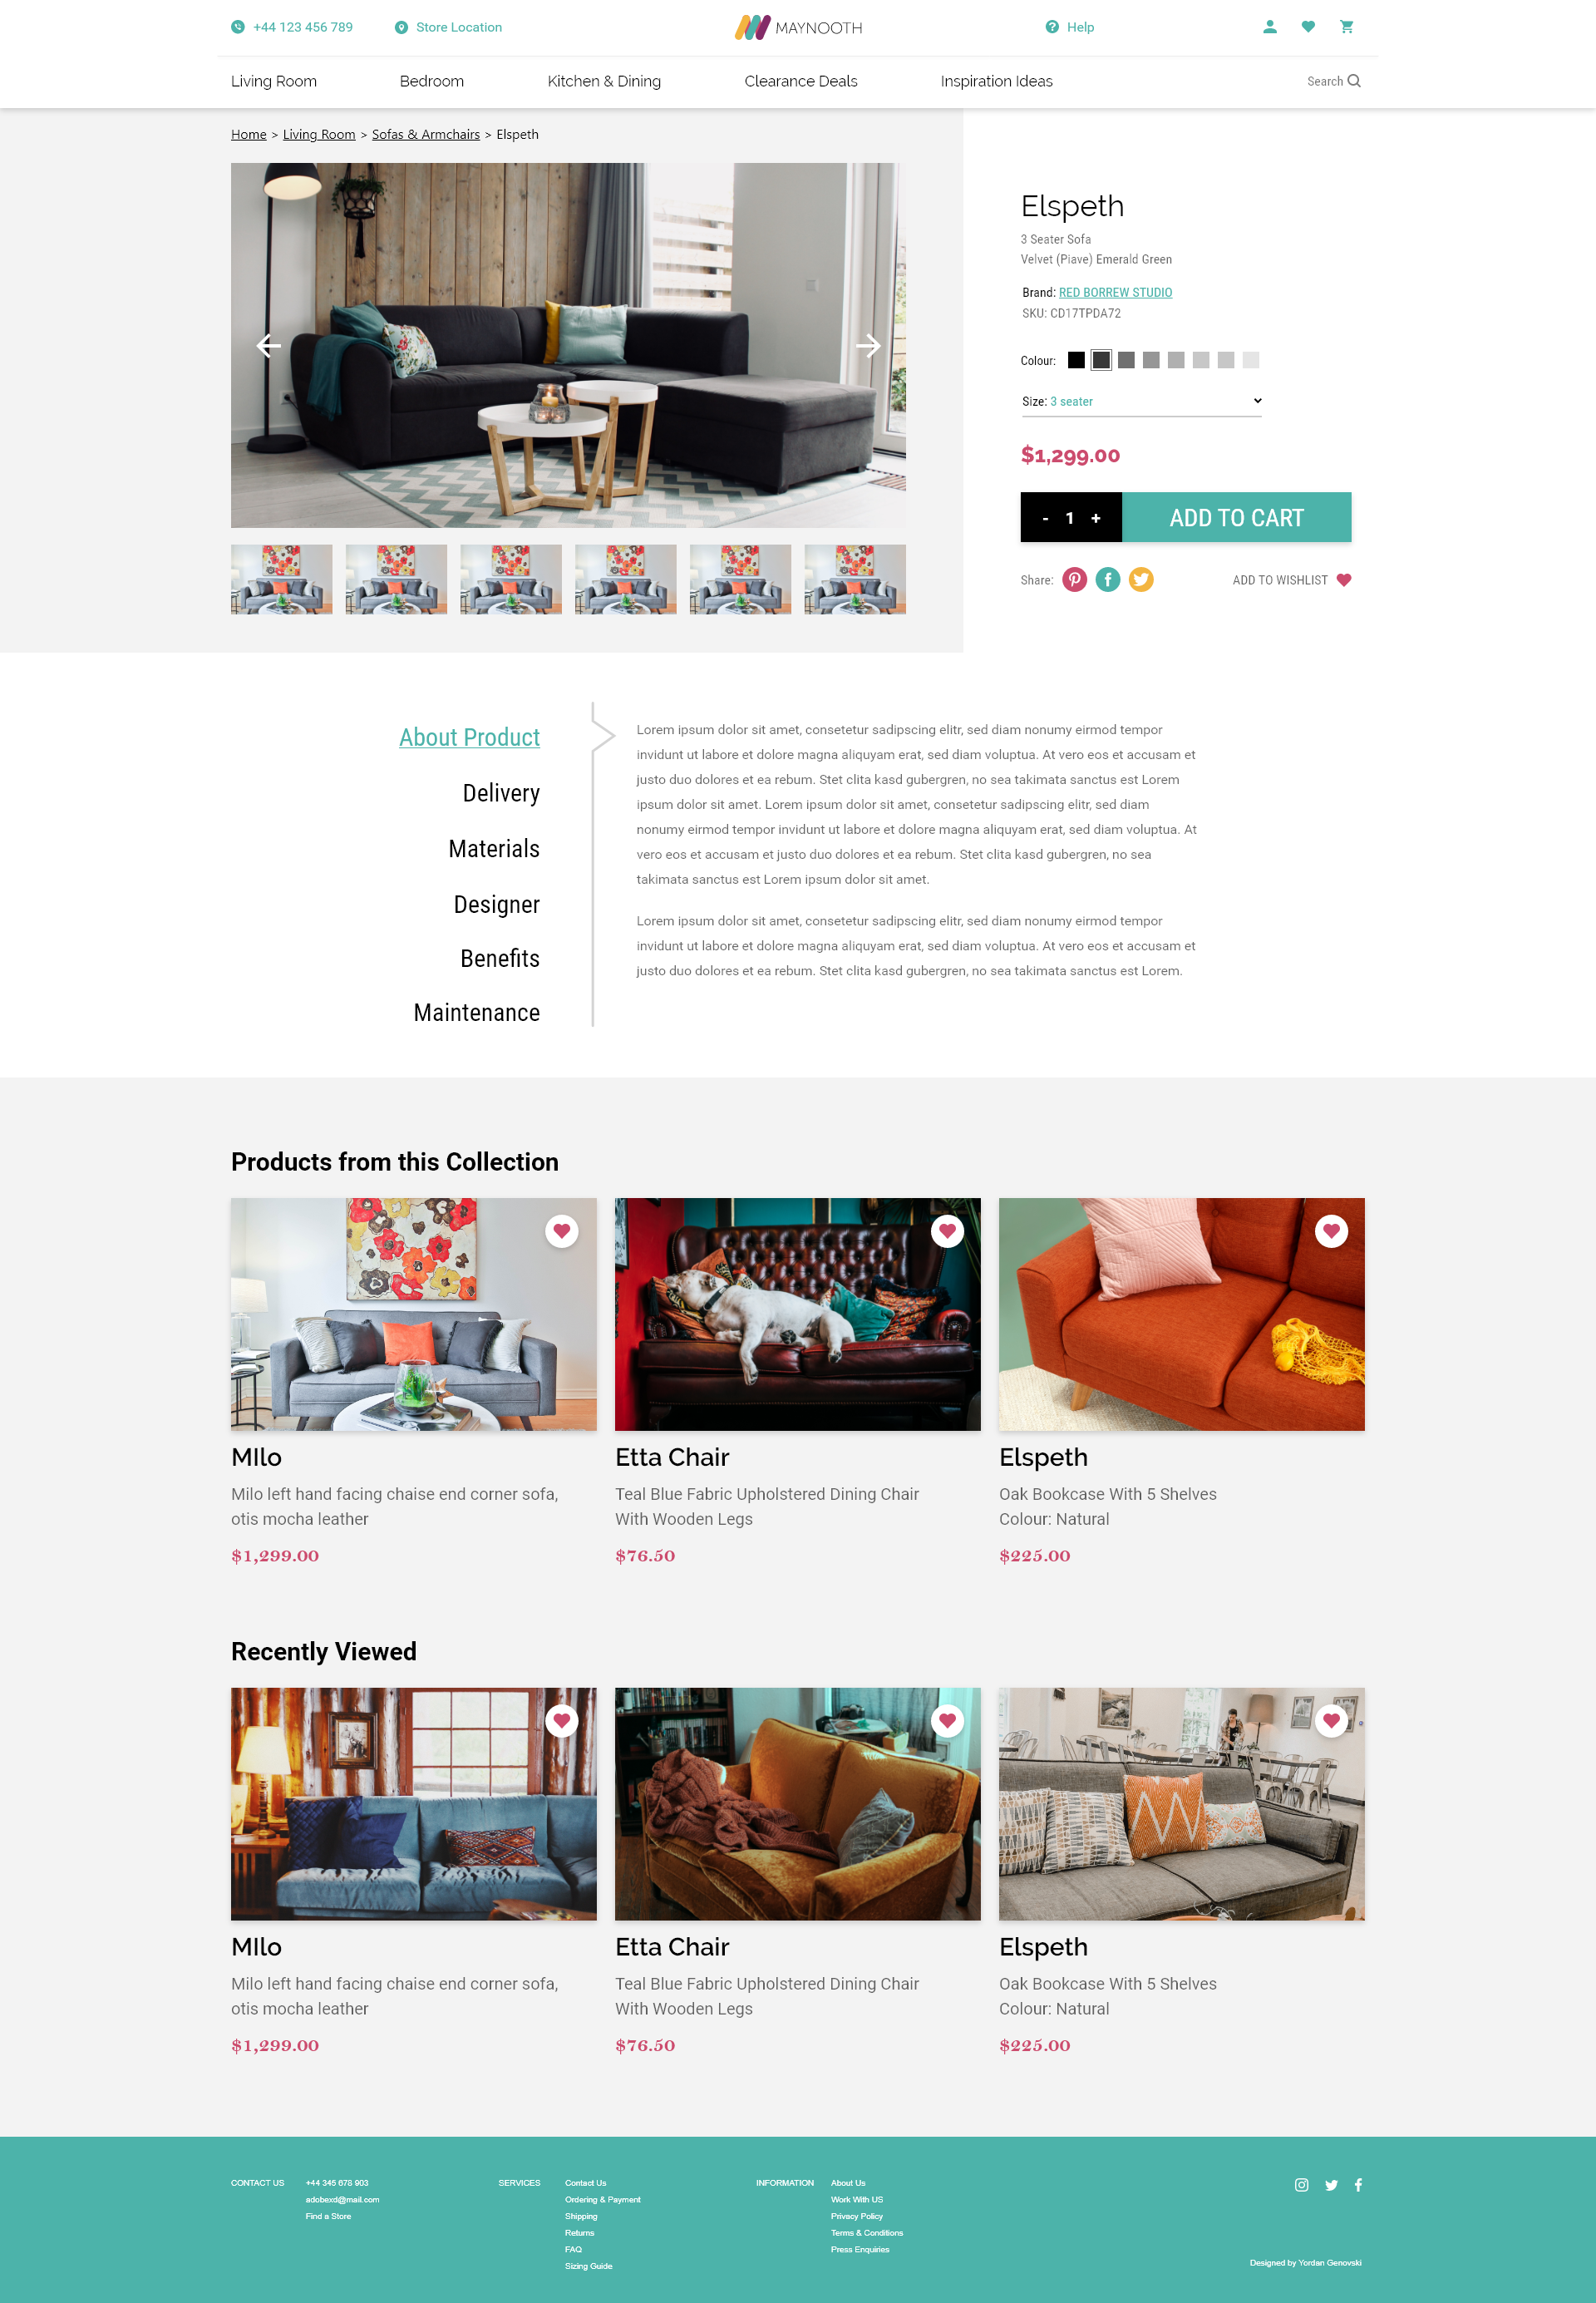 ui design product page maynooth